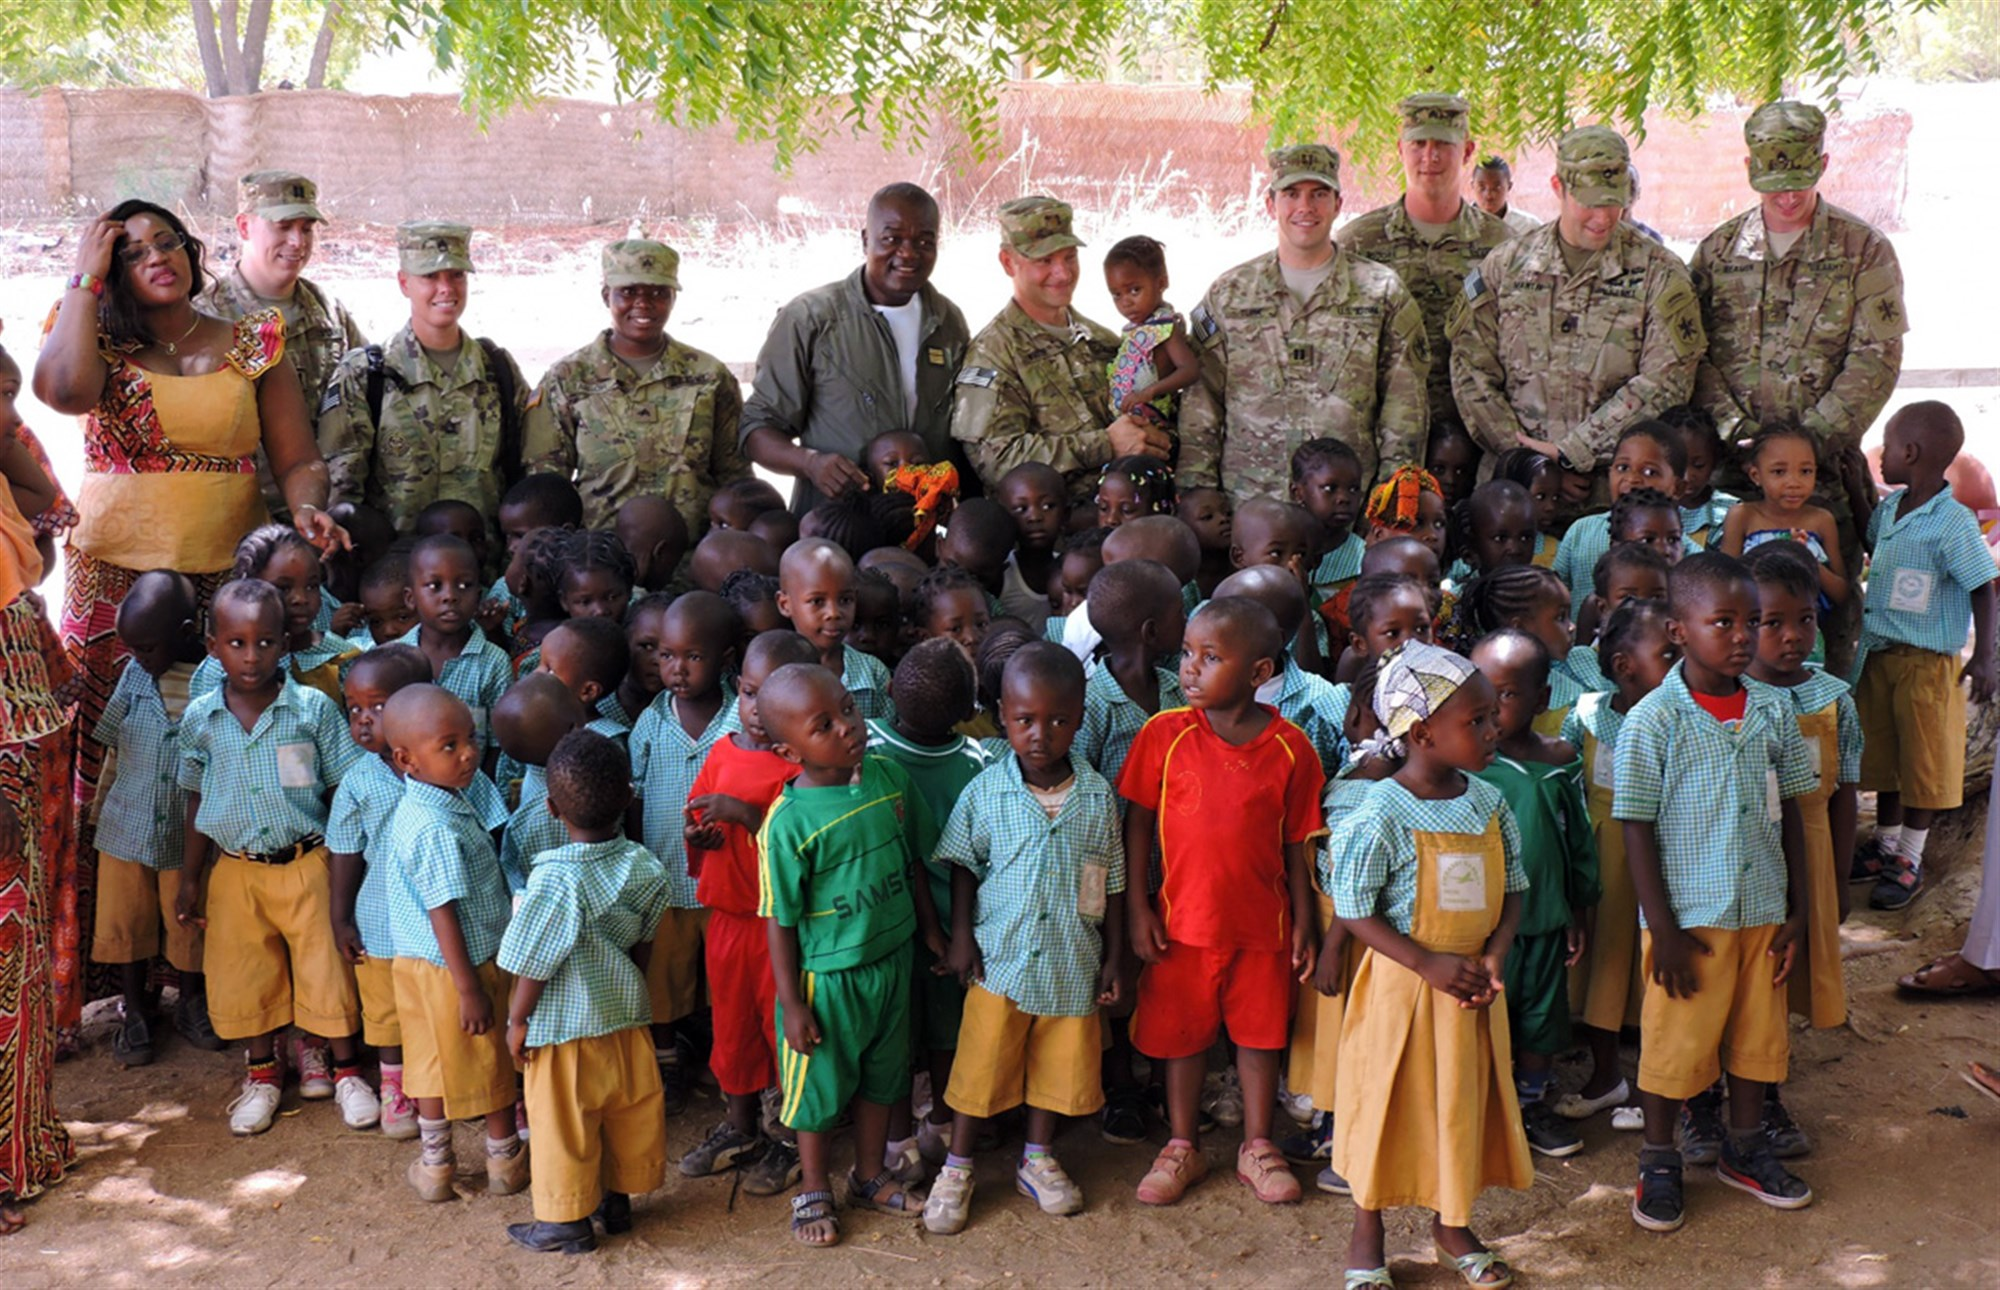 Soldiers from 2nd Infantry Brigade Combat Team, 3rd Infantry Division stationed in Garoua, Cameroon, present school supplies purchased with Spirit of America funding to the Cameroon Air Base 301 Pre-School on April 8. Soldiers from 3rd Inf. Div. provide non-lethal support to their Cameroonian hosts as part of U.S. Africa Command. (U.S. Army Africa photo by Spc. Jonathan Singletary/Released)